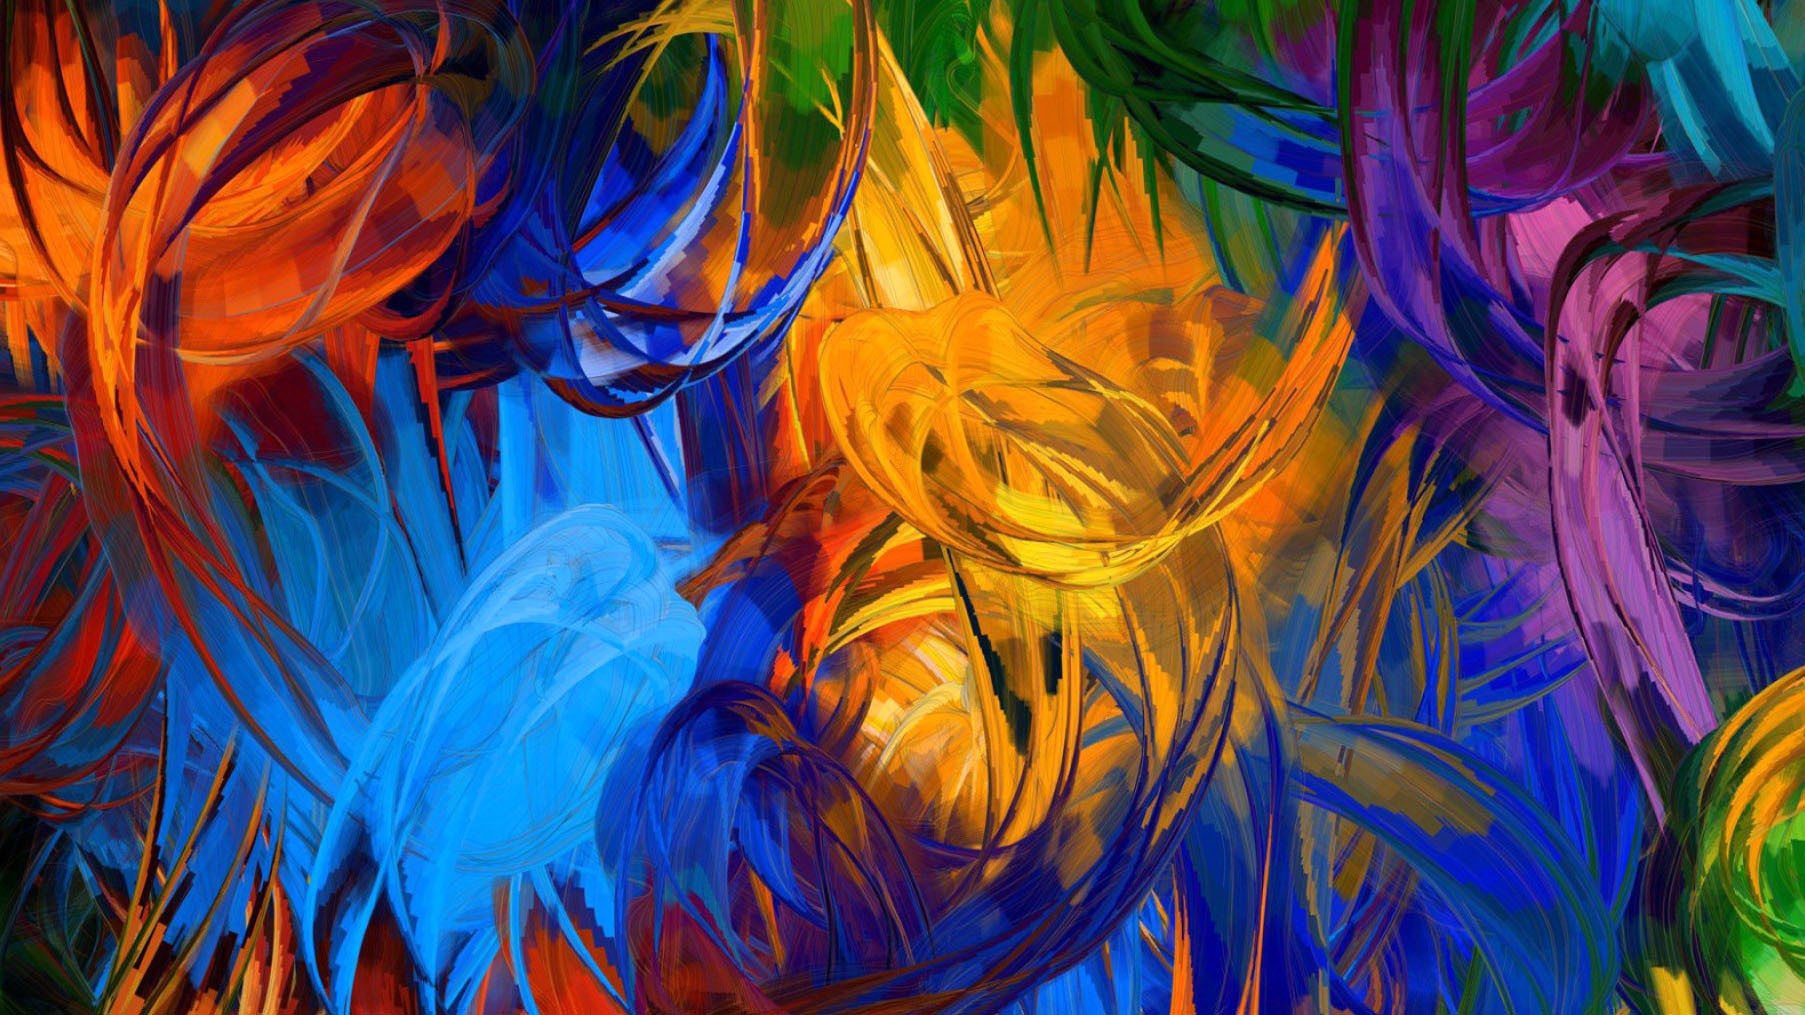 High Resolution Abstract Painting - HD Wallpaper